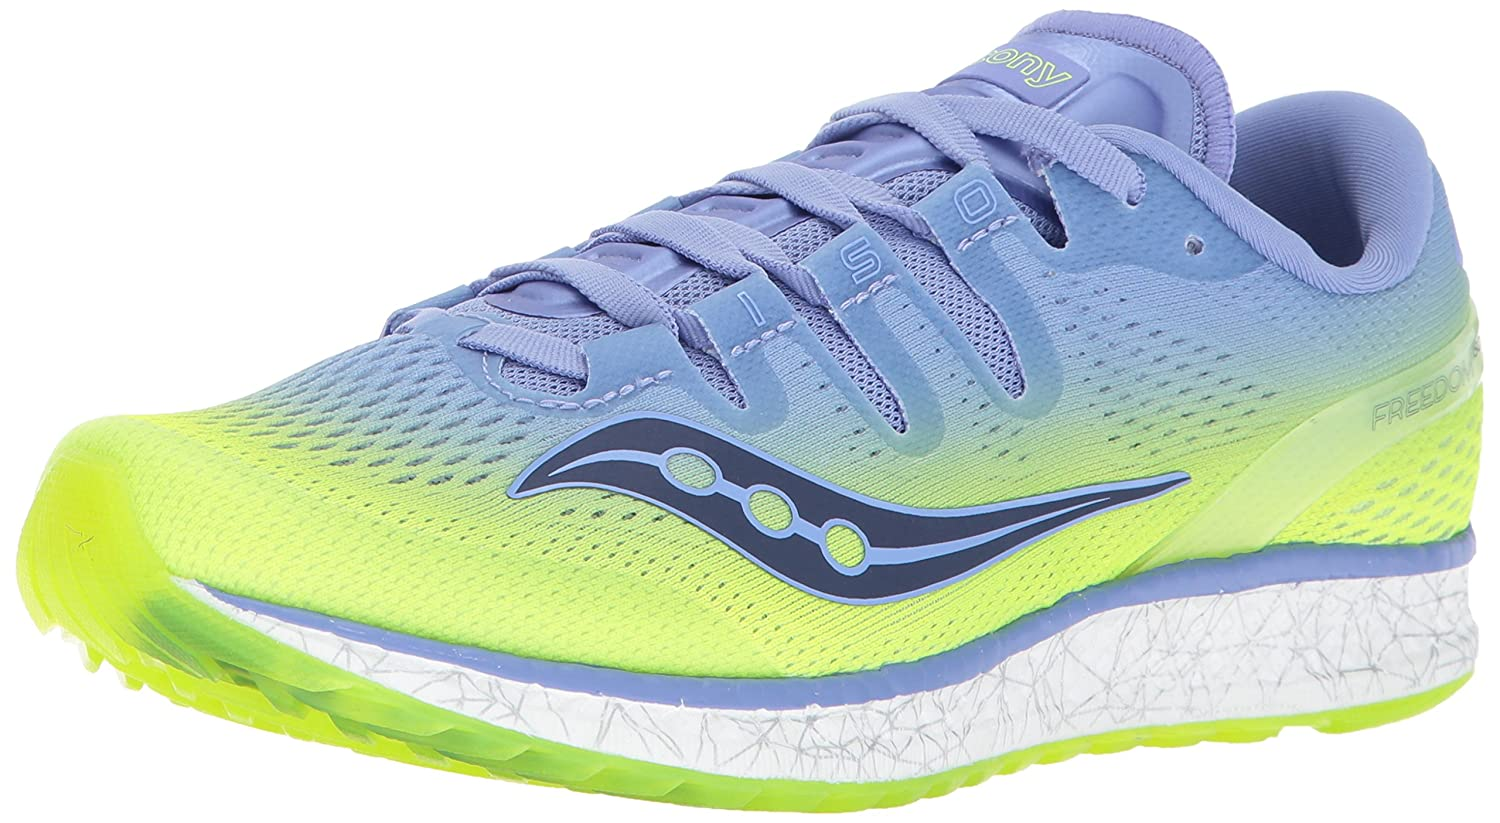 Saucony Women's Freedom ISO Running Shoe B01N9KB31H 9.5 B(M) US|Citron Purple